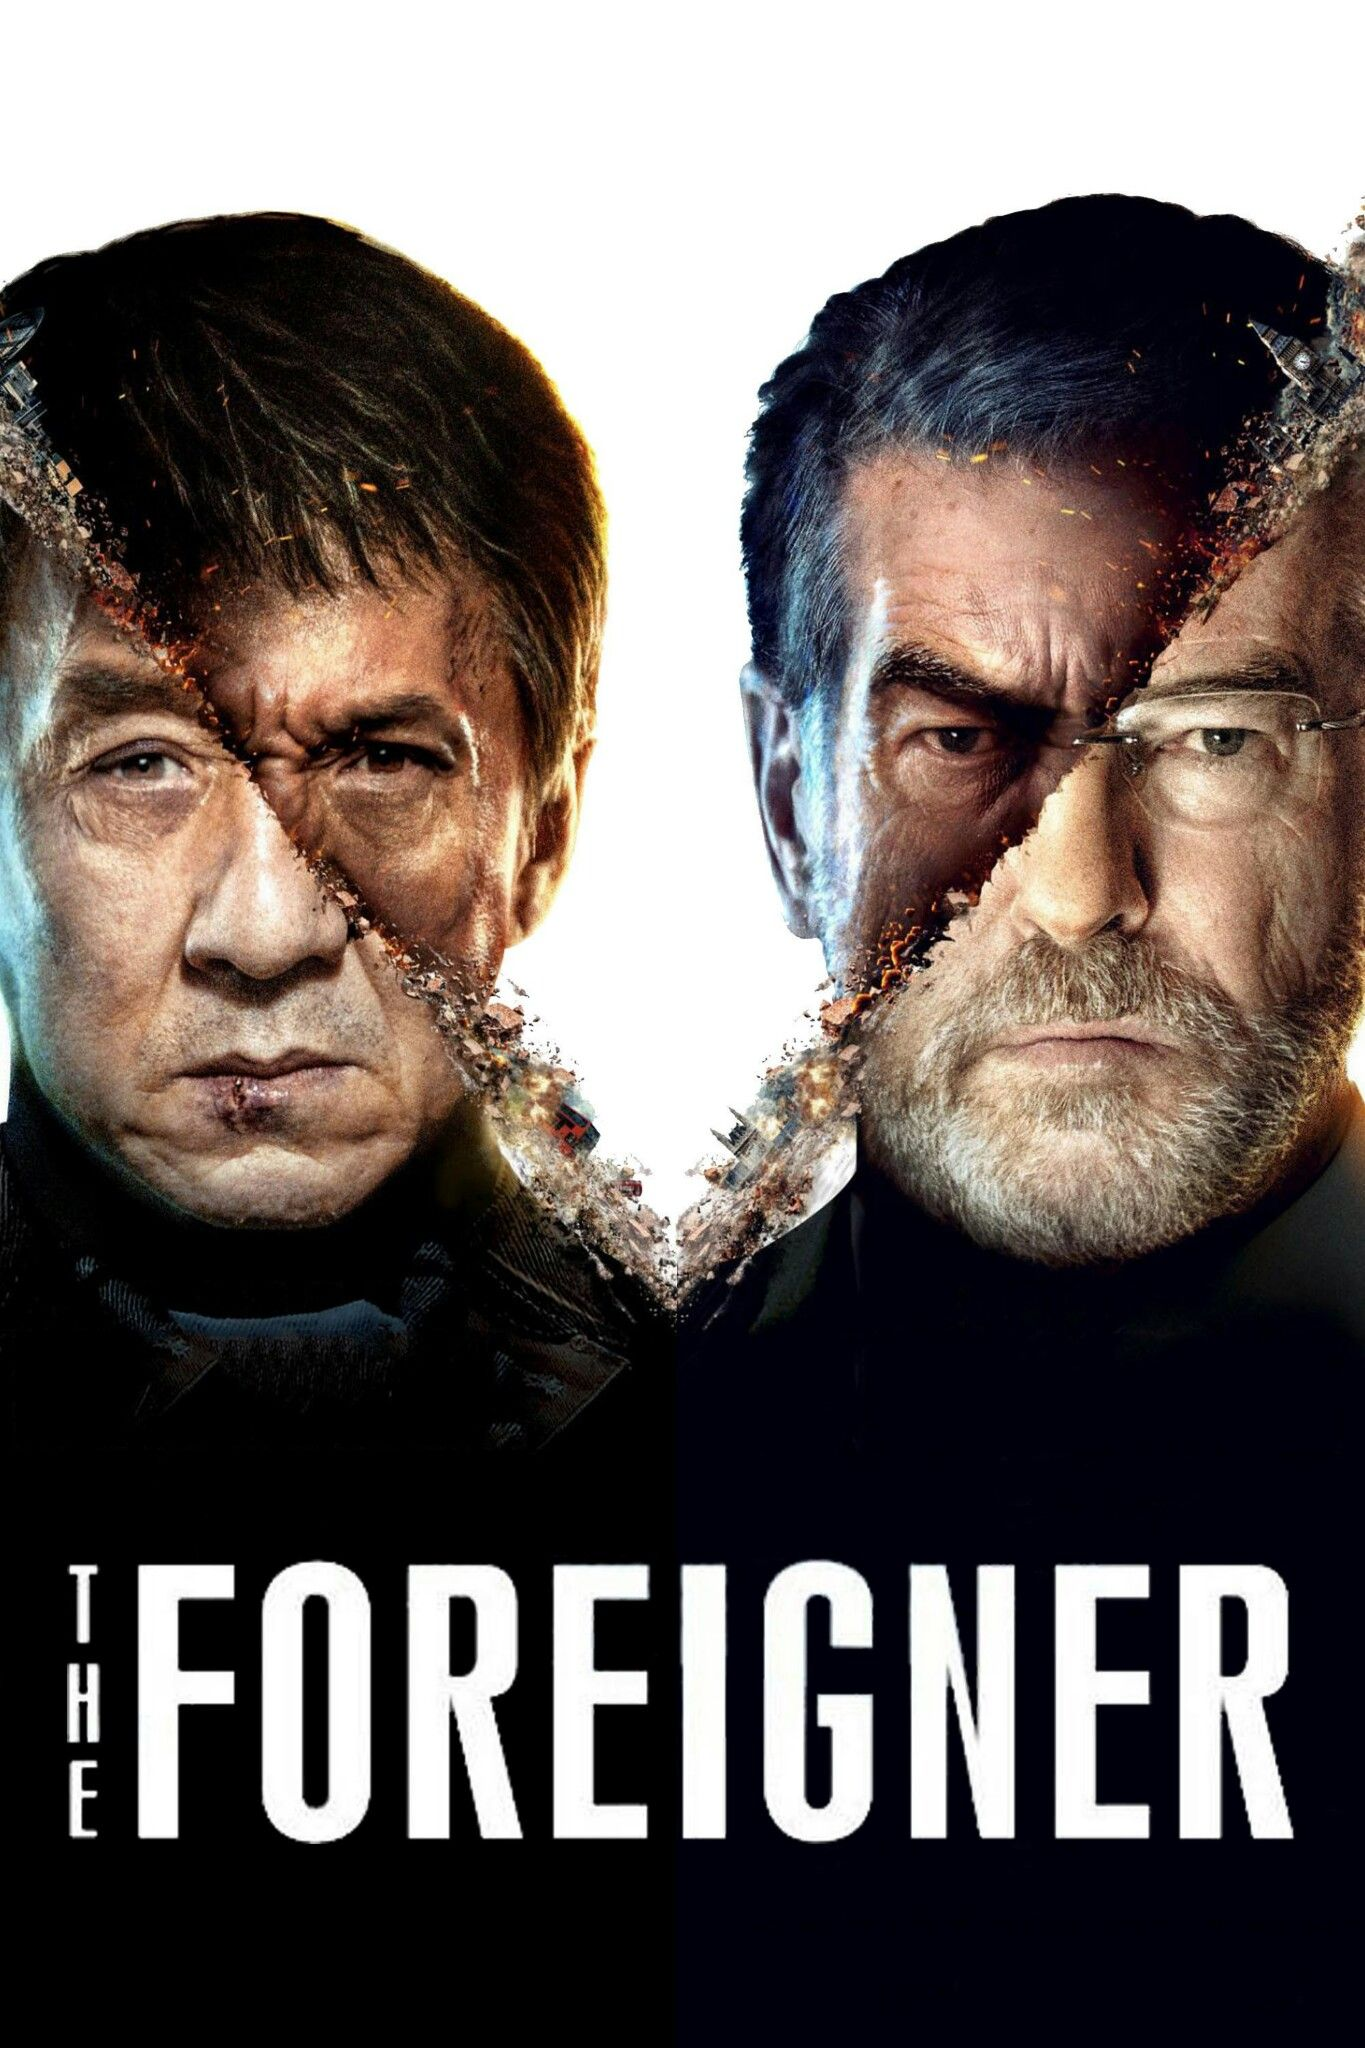 The Foreigner Movie Poster Fantastic Movie Posters Scifi Movie Posters Horror Movie Posters Action Movie P Full Movies Online Free Jackie Chan Movies Movies